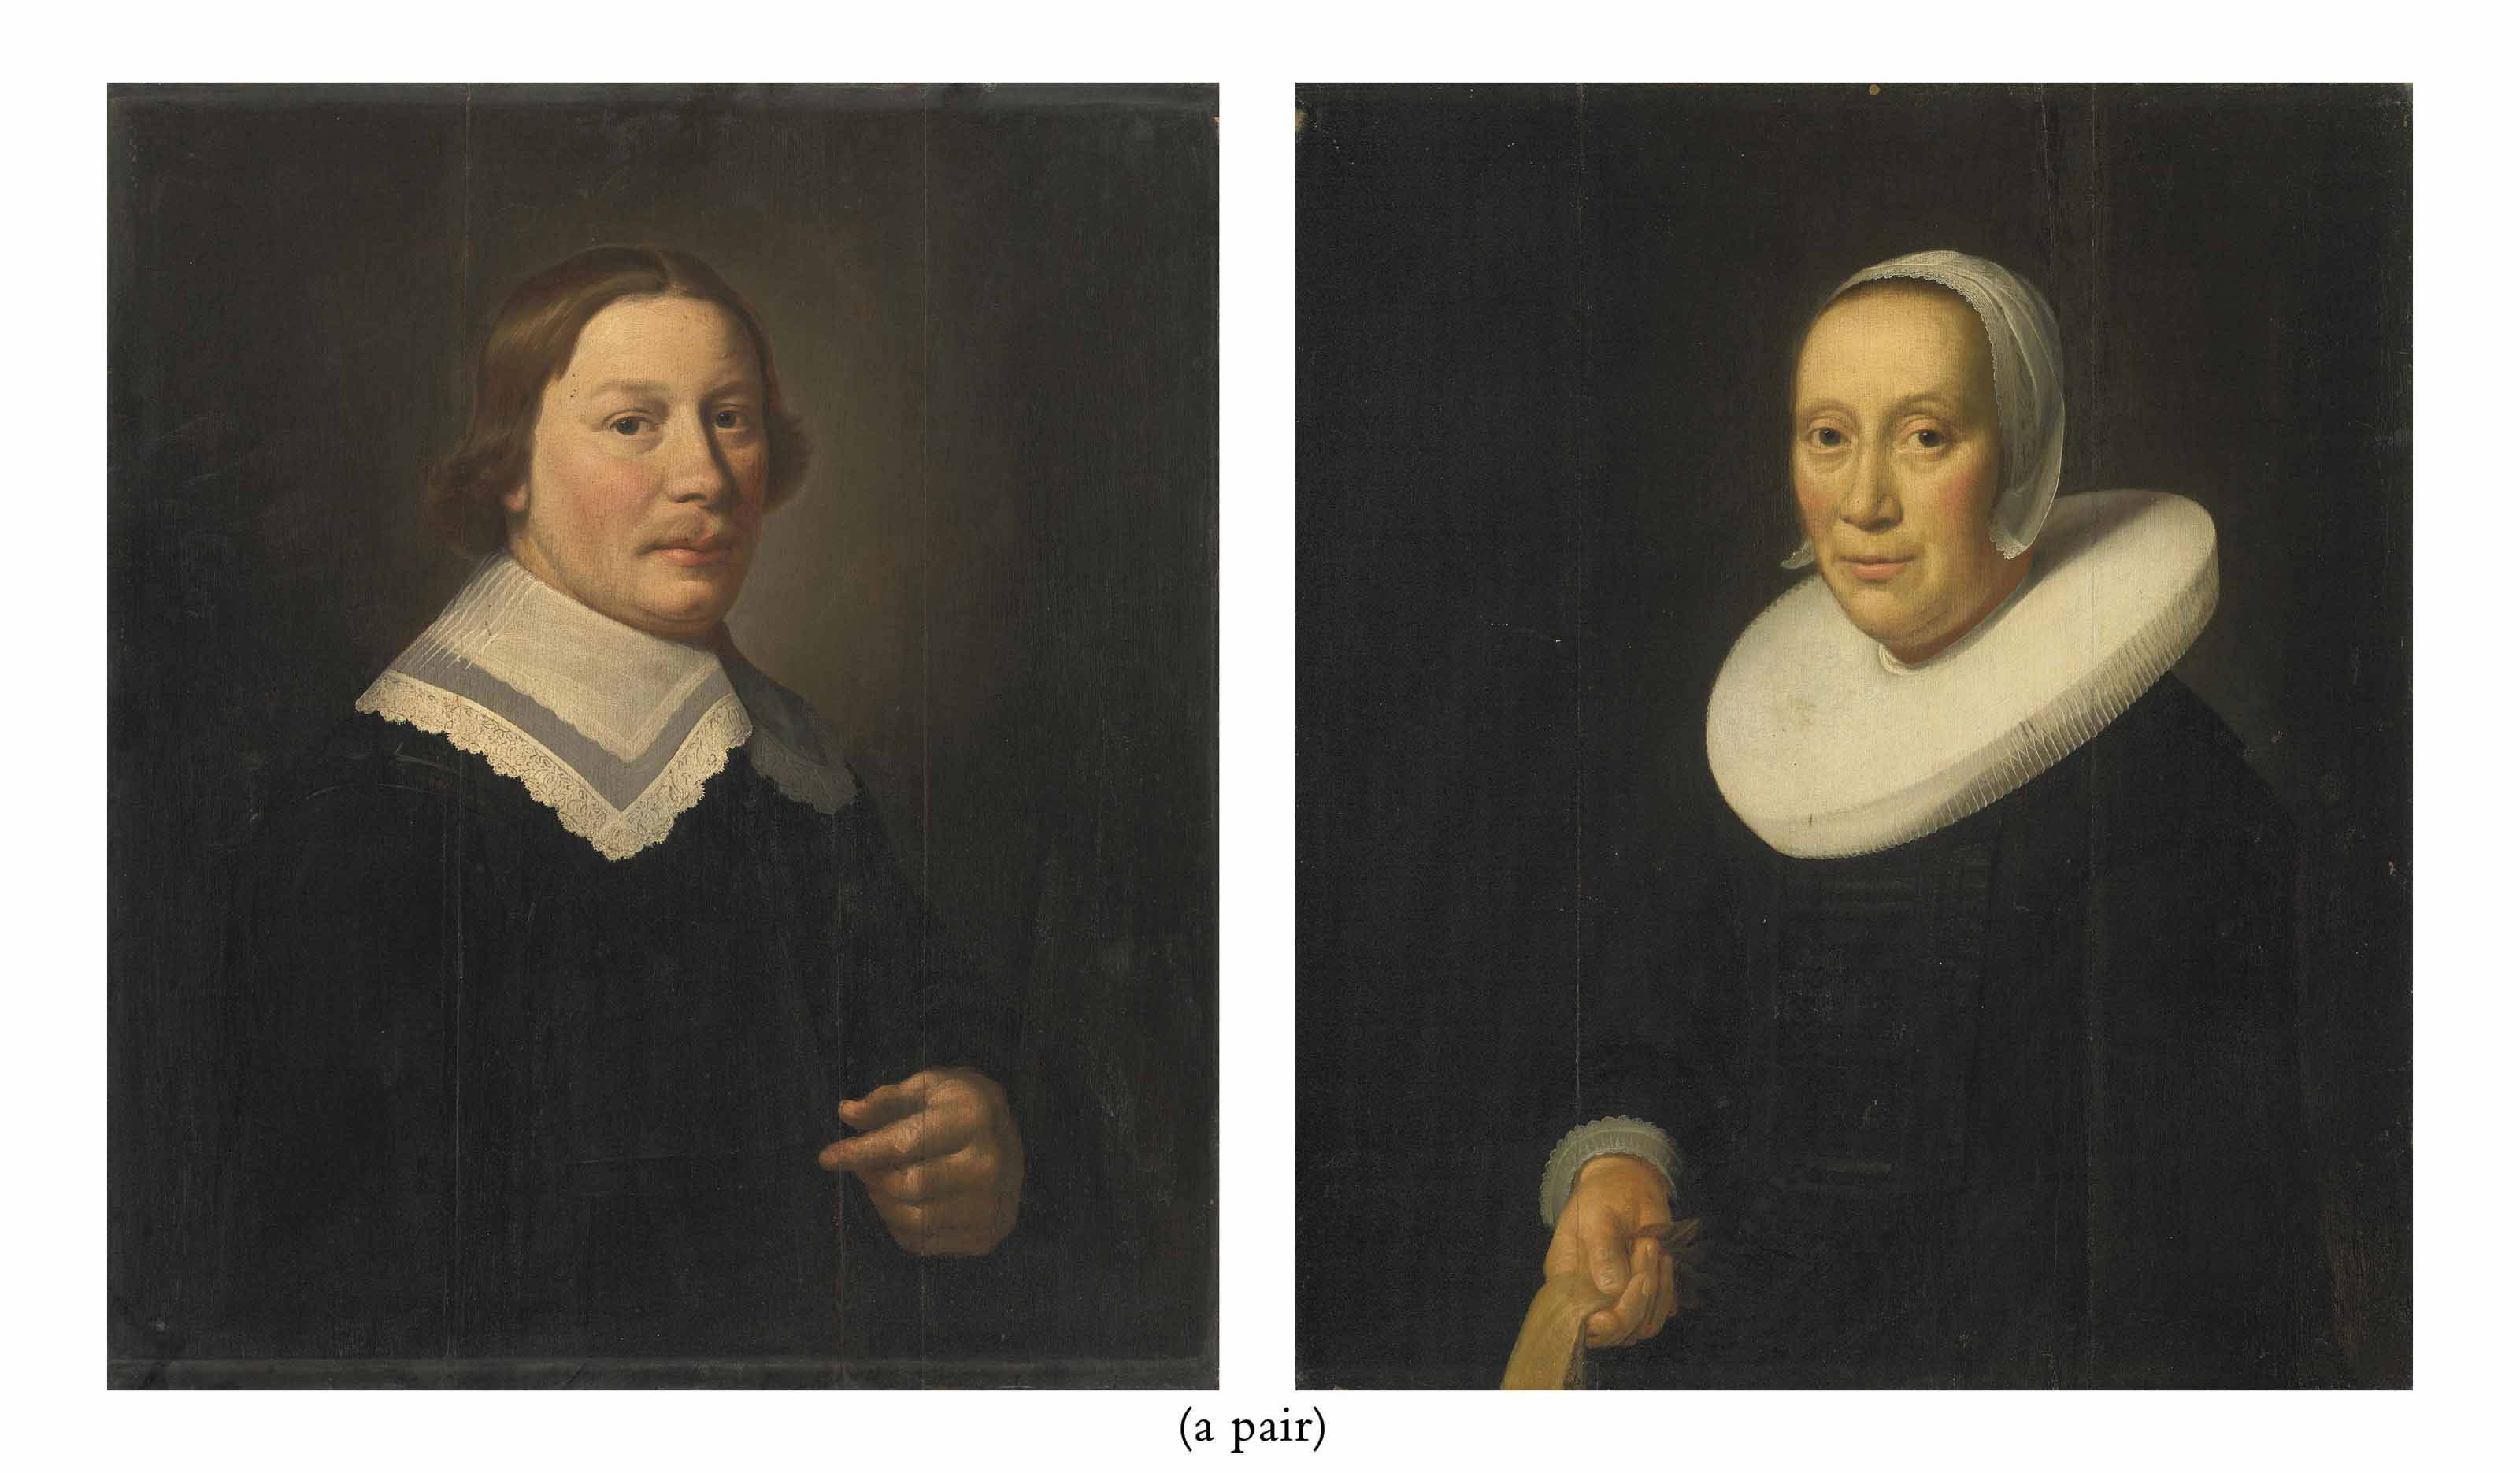 Portrait of a gentleman, half-length, in black with a white collar; and Portrait of a lady, half-length, in black with a white collar and bonnet